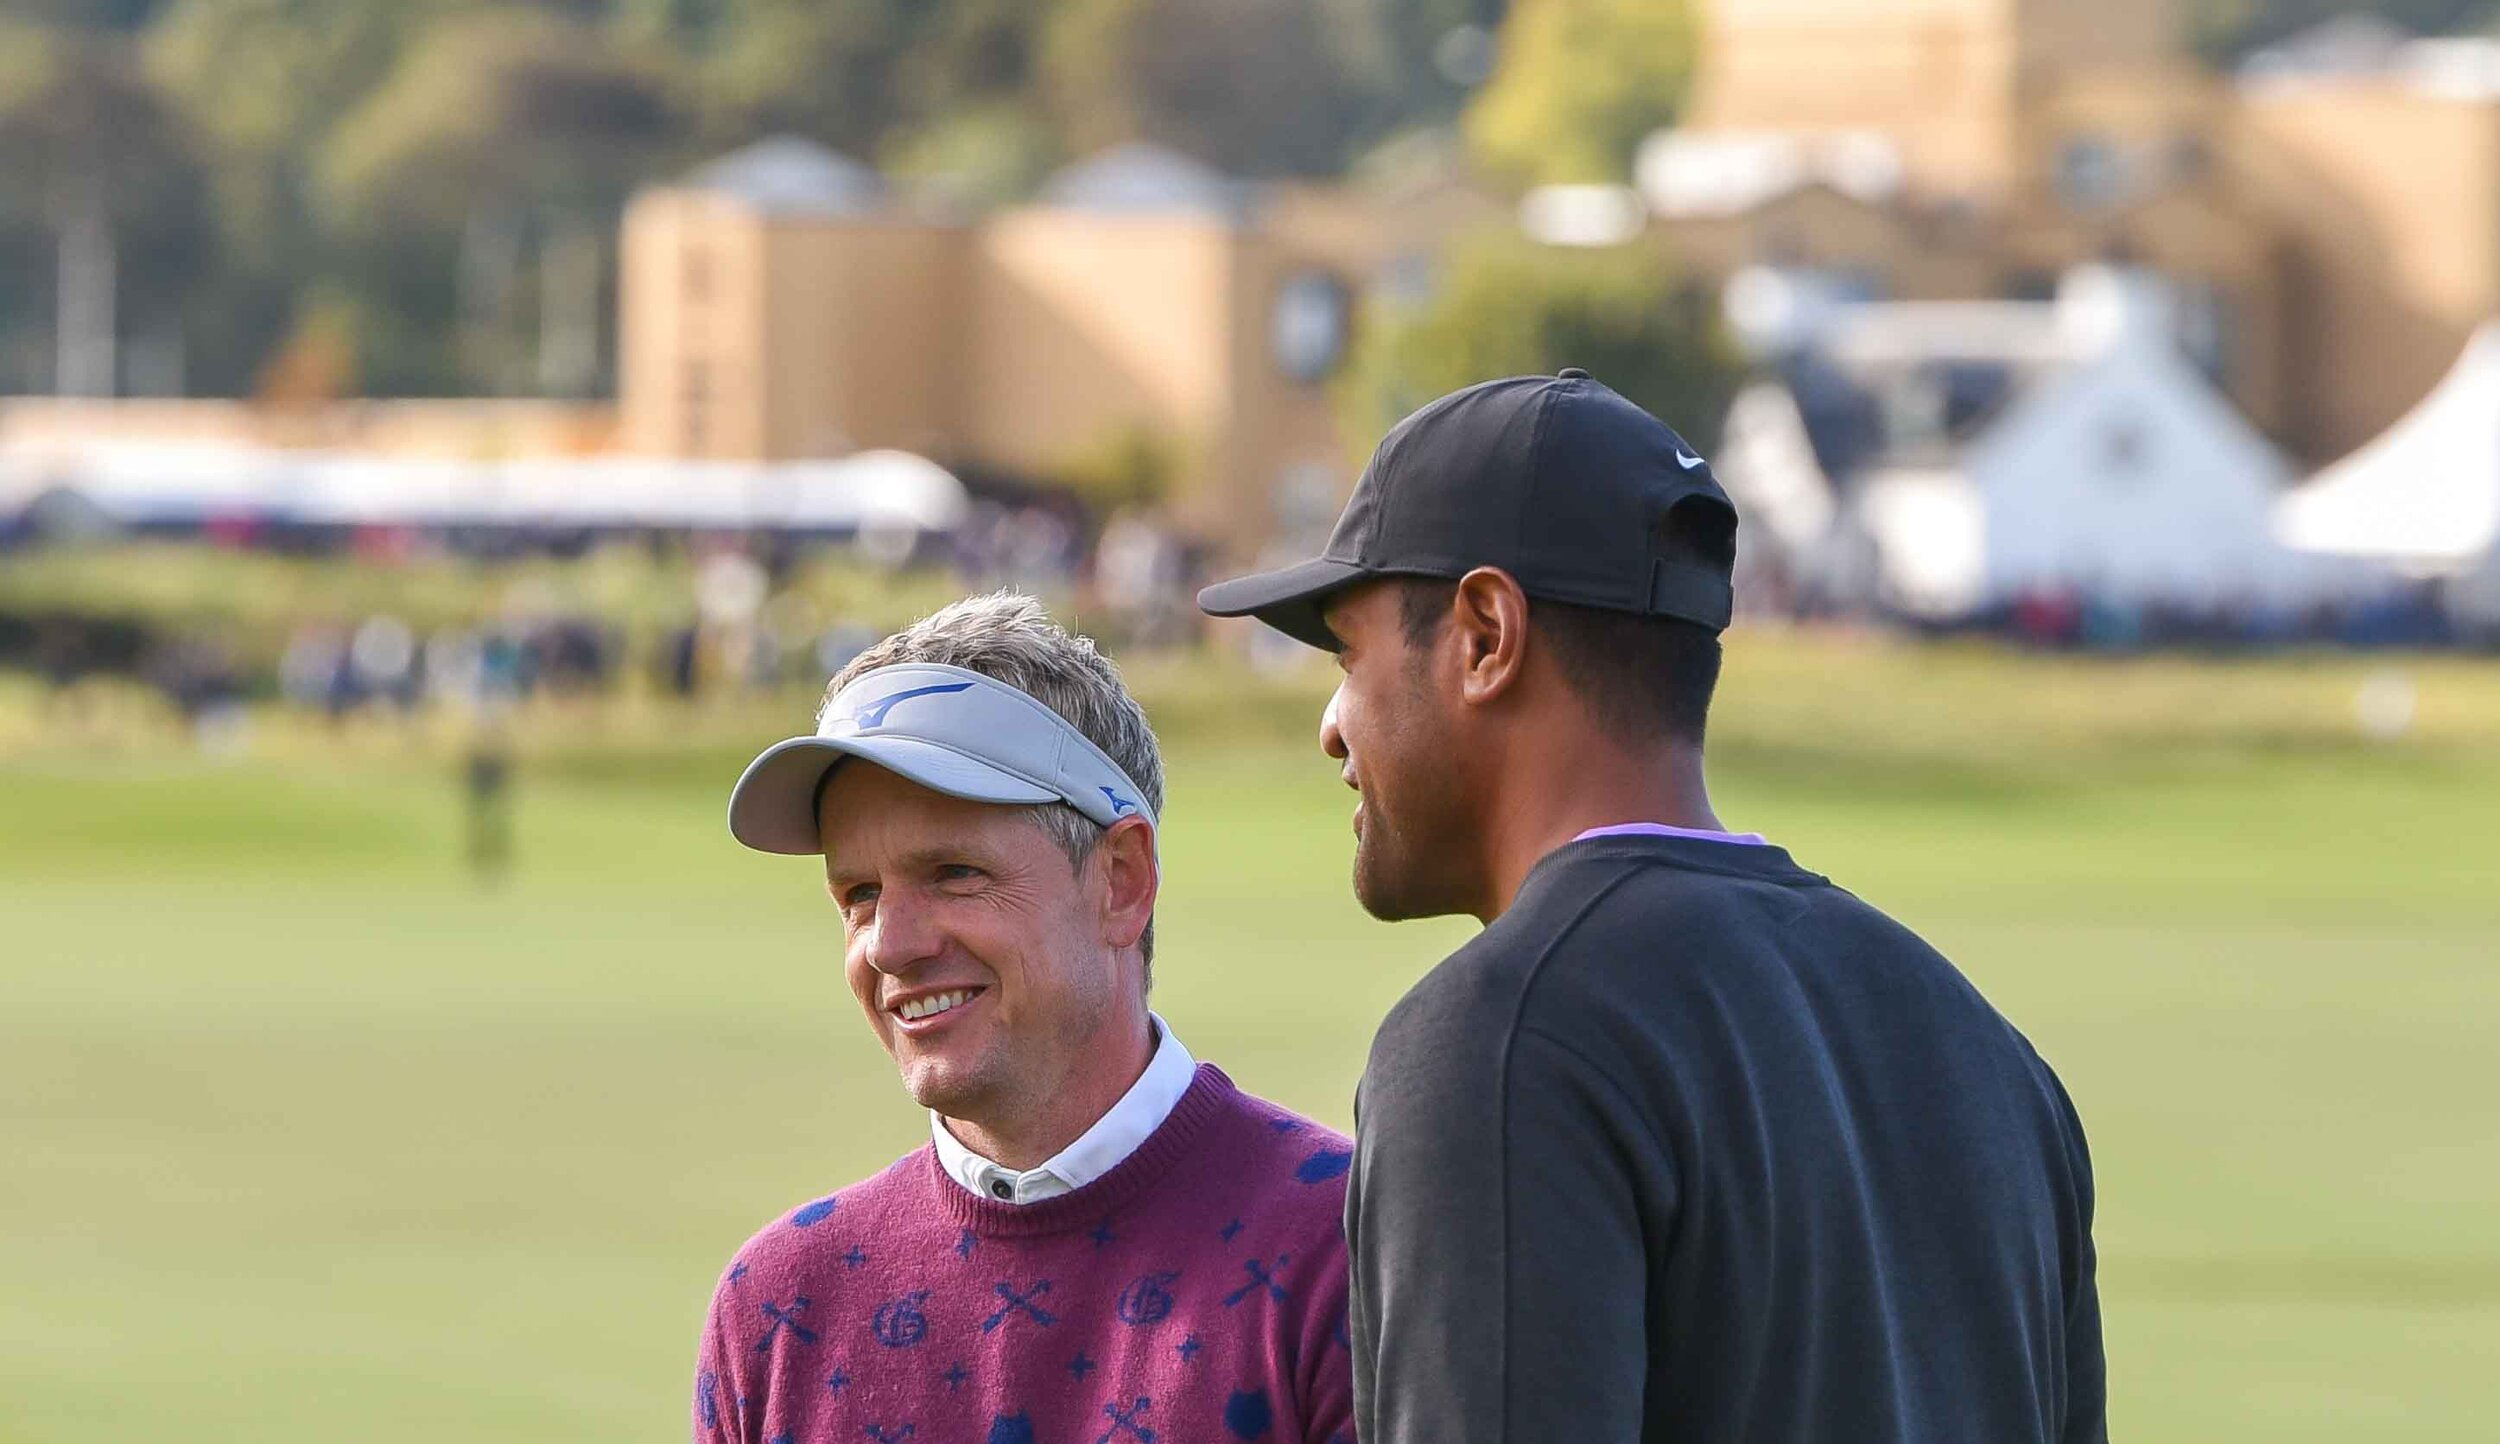 Luke Donald is all smiles after holing out for eagle on 18.